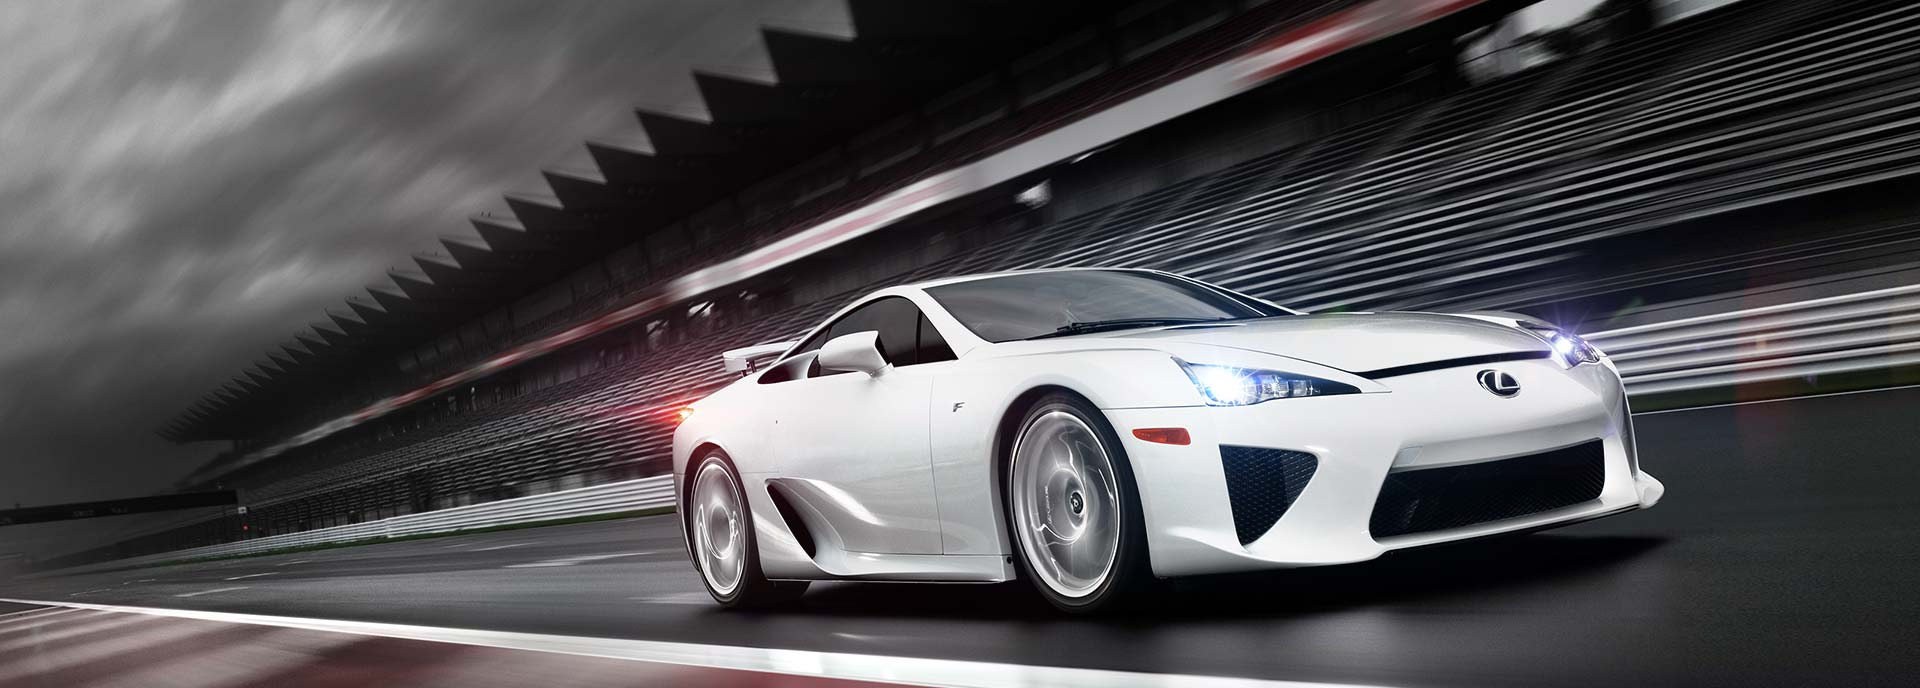 the lexus lfa supercar - the power of craftsmanship | lexus